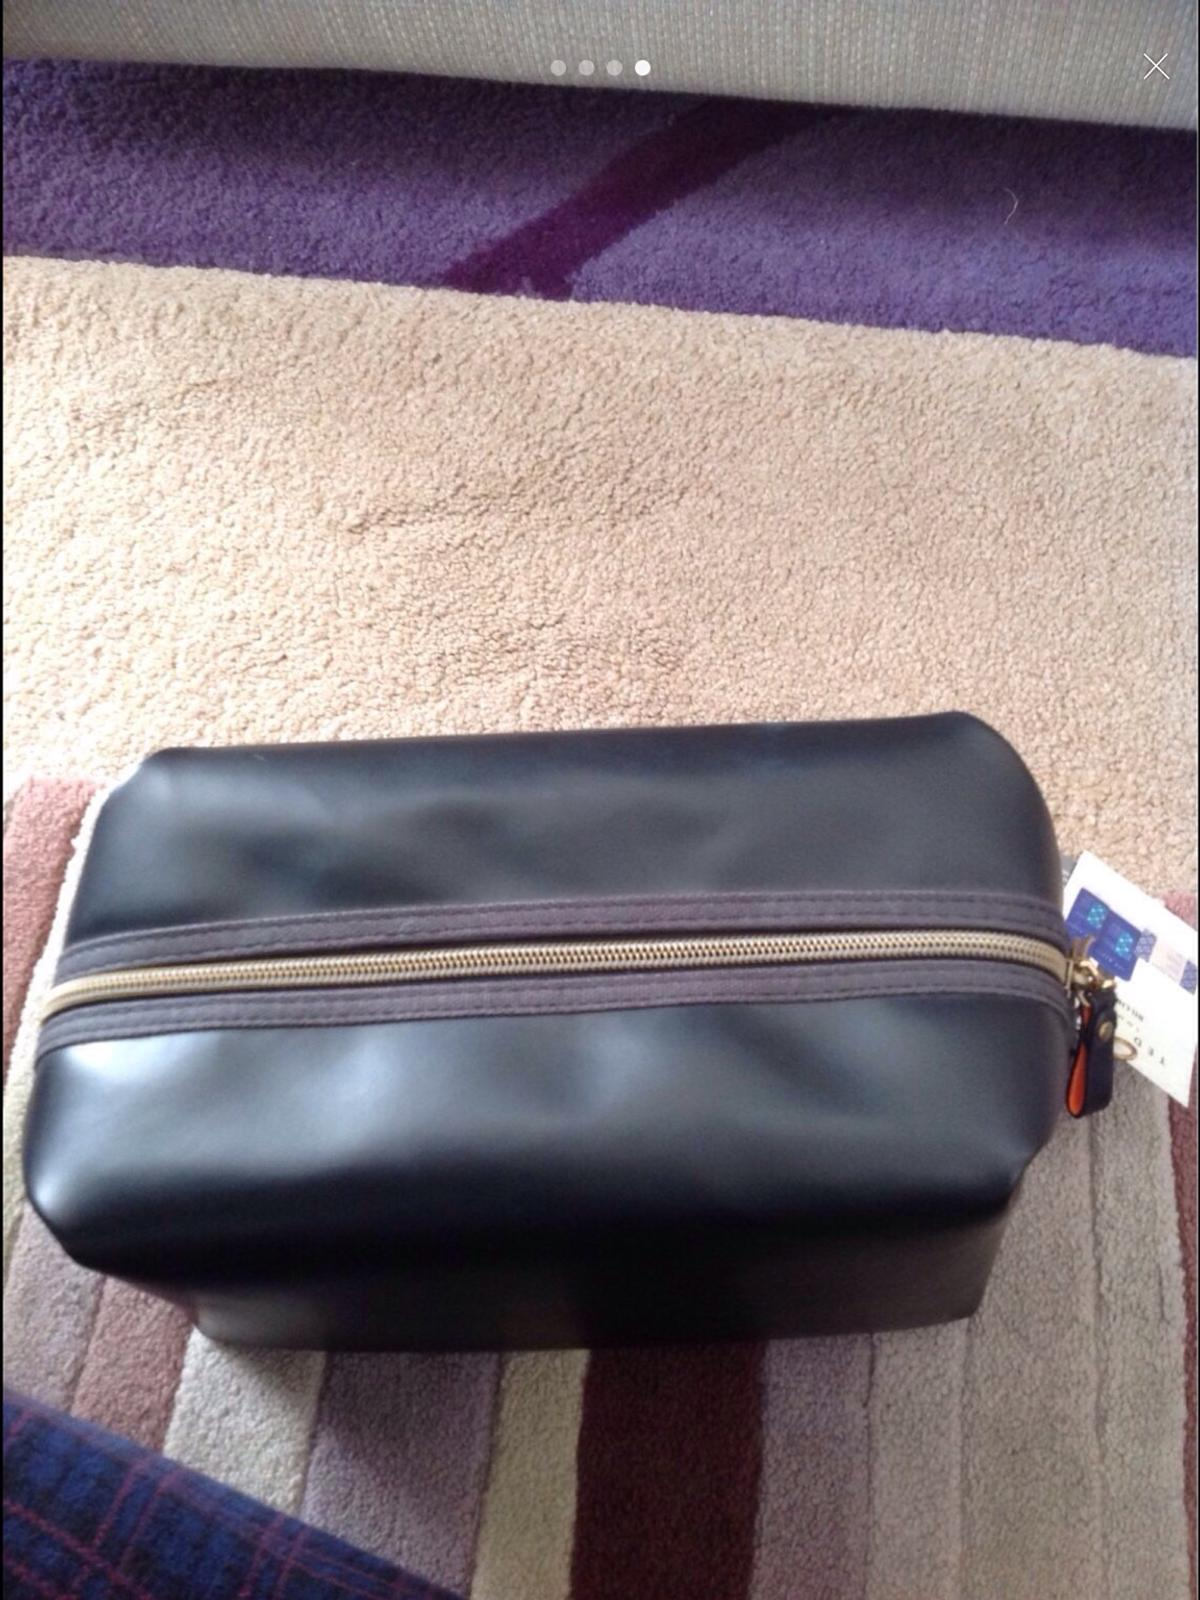 8f663de9b Brand new ted baker toiletry bag in LE2 Leicester for £6.00 for sale ...